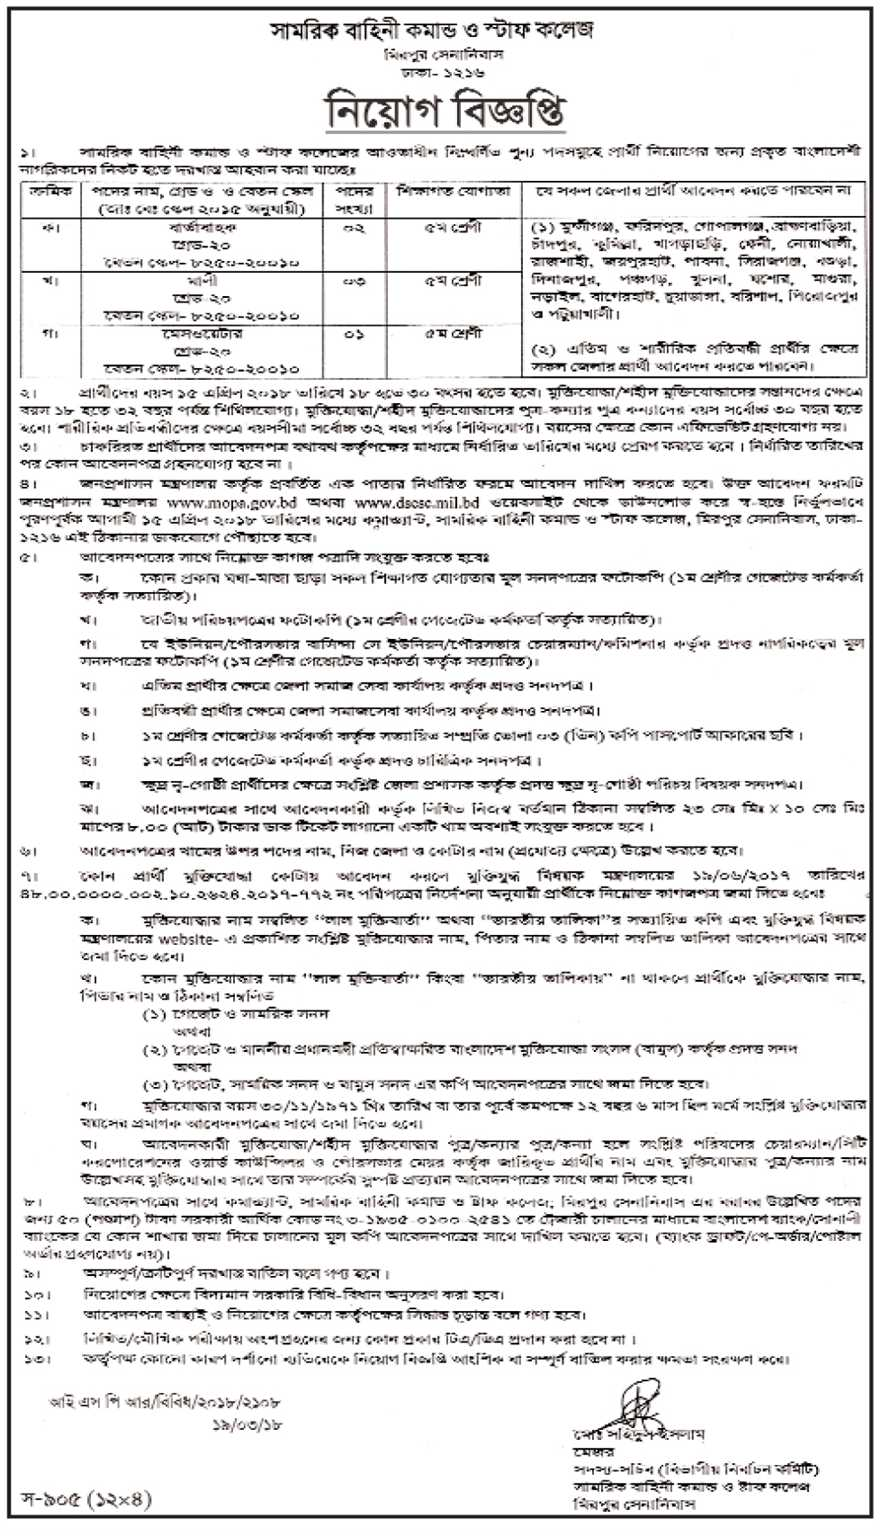 Defence Services Command and Staff College (DSCS) Job Circular 2018